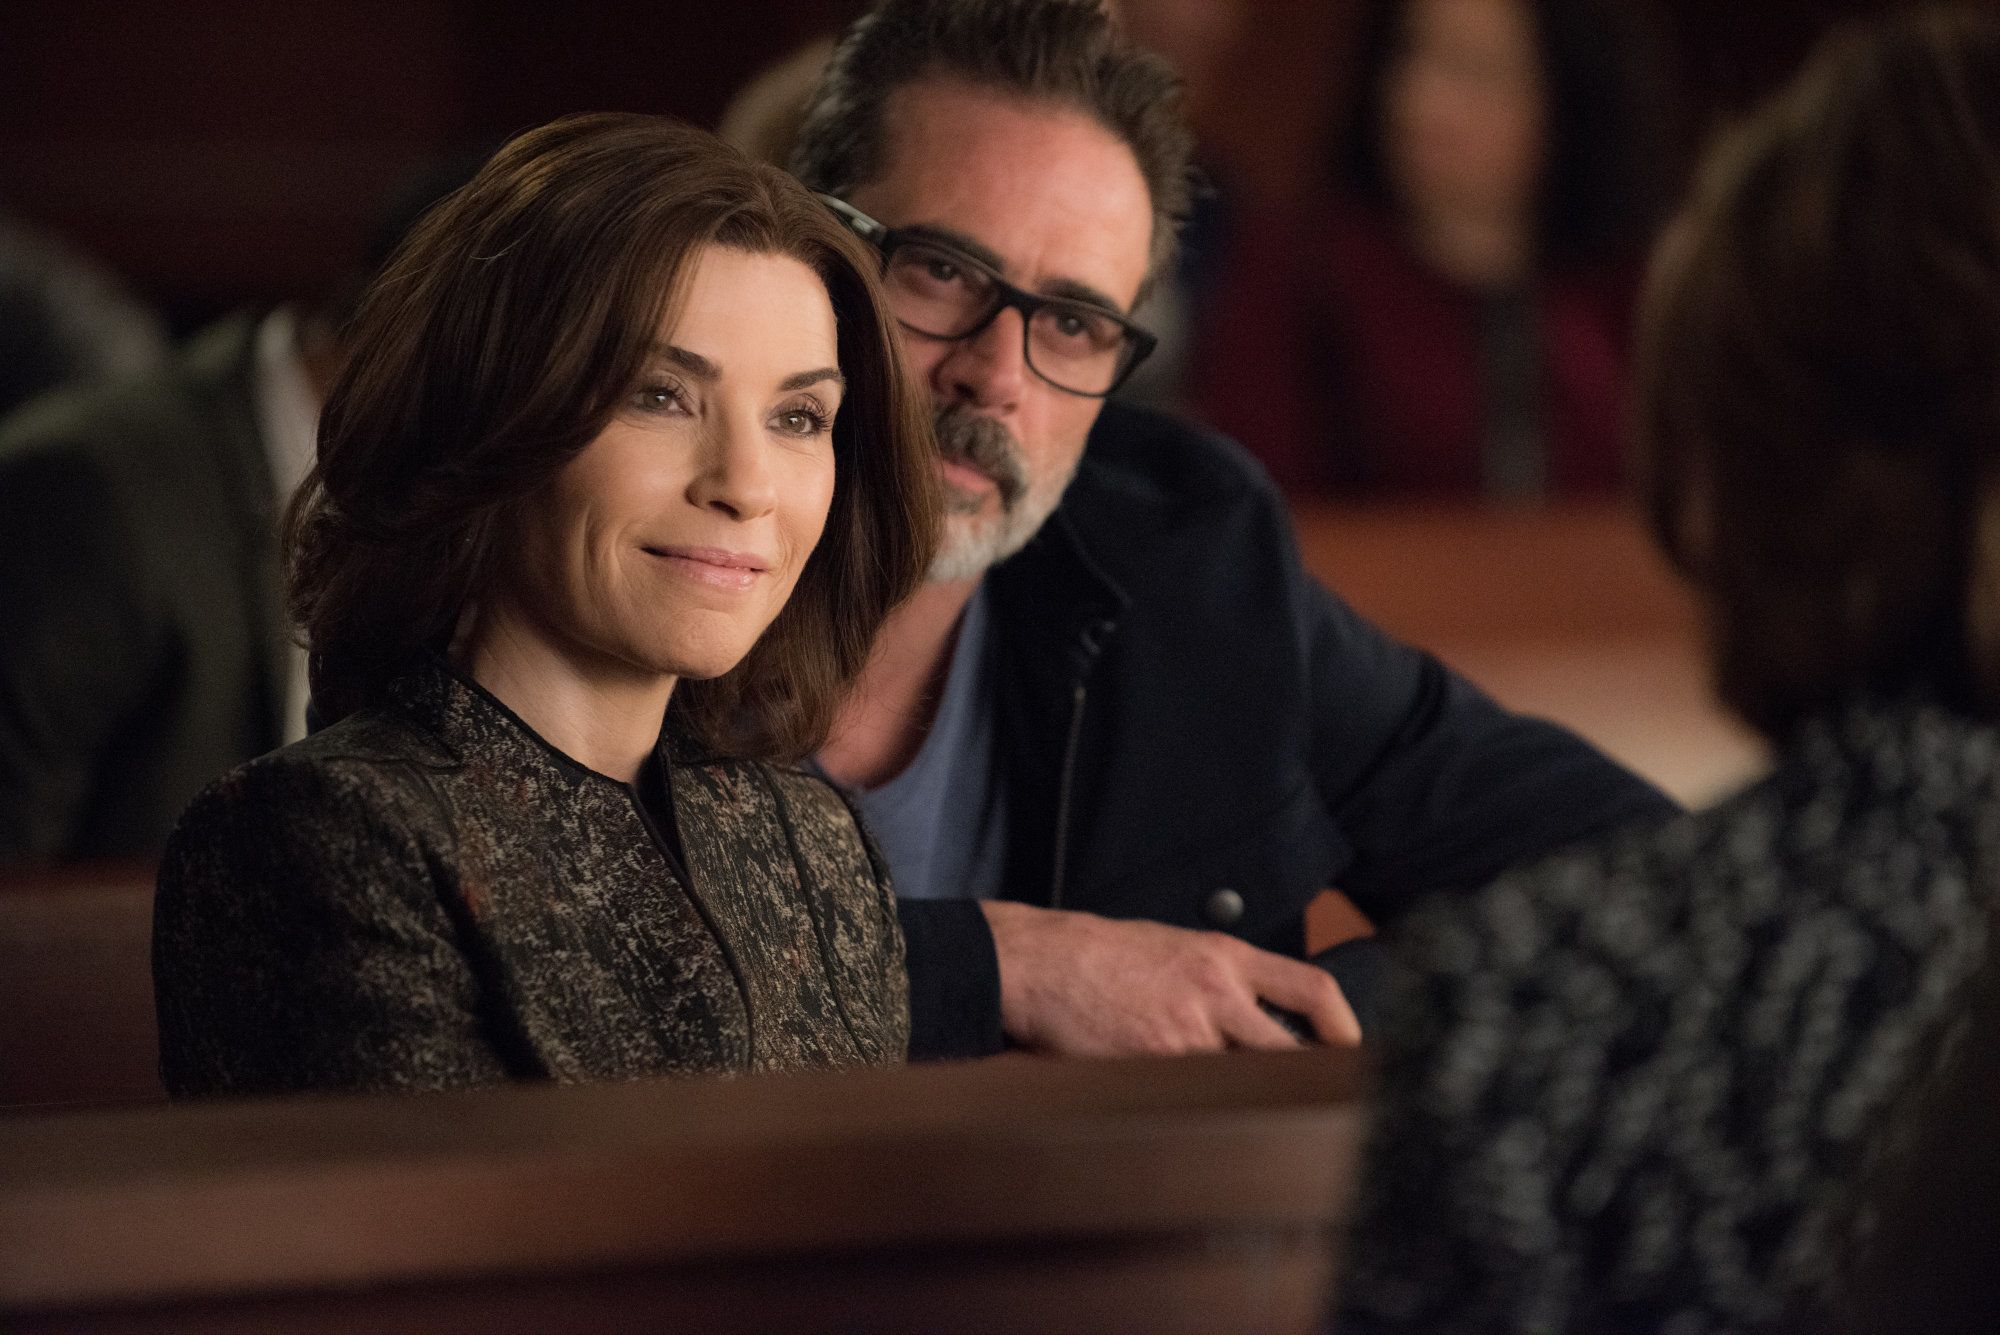 NEW YORK - APRIL 12: 'End' -- THE GOOD WIFE reaches its dramatic conclusion on the series finale, Sunday, May 8 (9:00-10:00 PM, ET/PT) on the CBS Television Network. Pictured (L-R)  Julianna Margulies  as Alicia Florrick and  Jeffrey Dean Morgan  as Jason Crouse (Photo By Jeff Neumann/CBS via Getty Images)